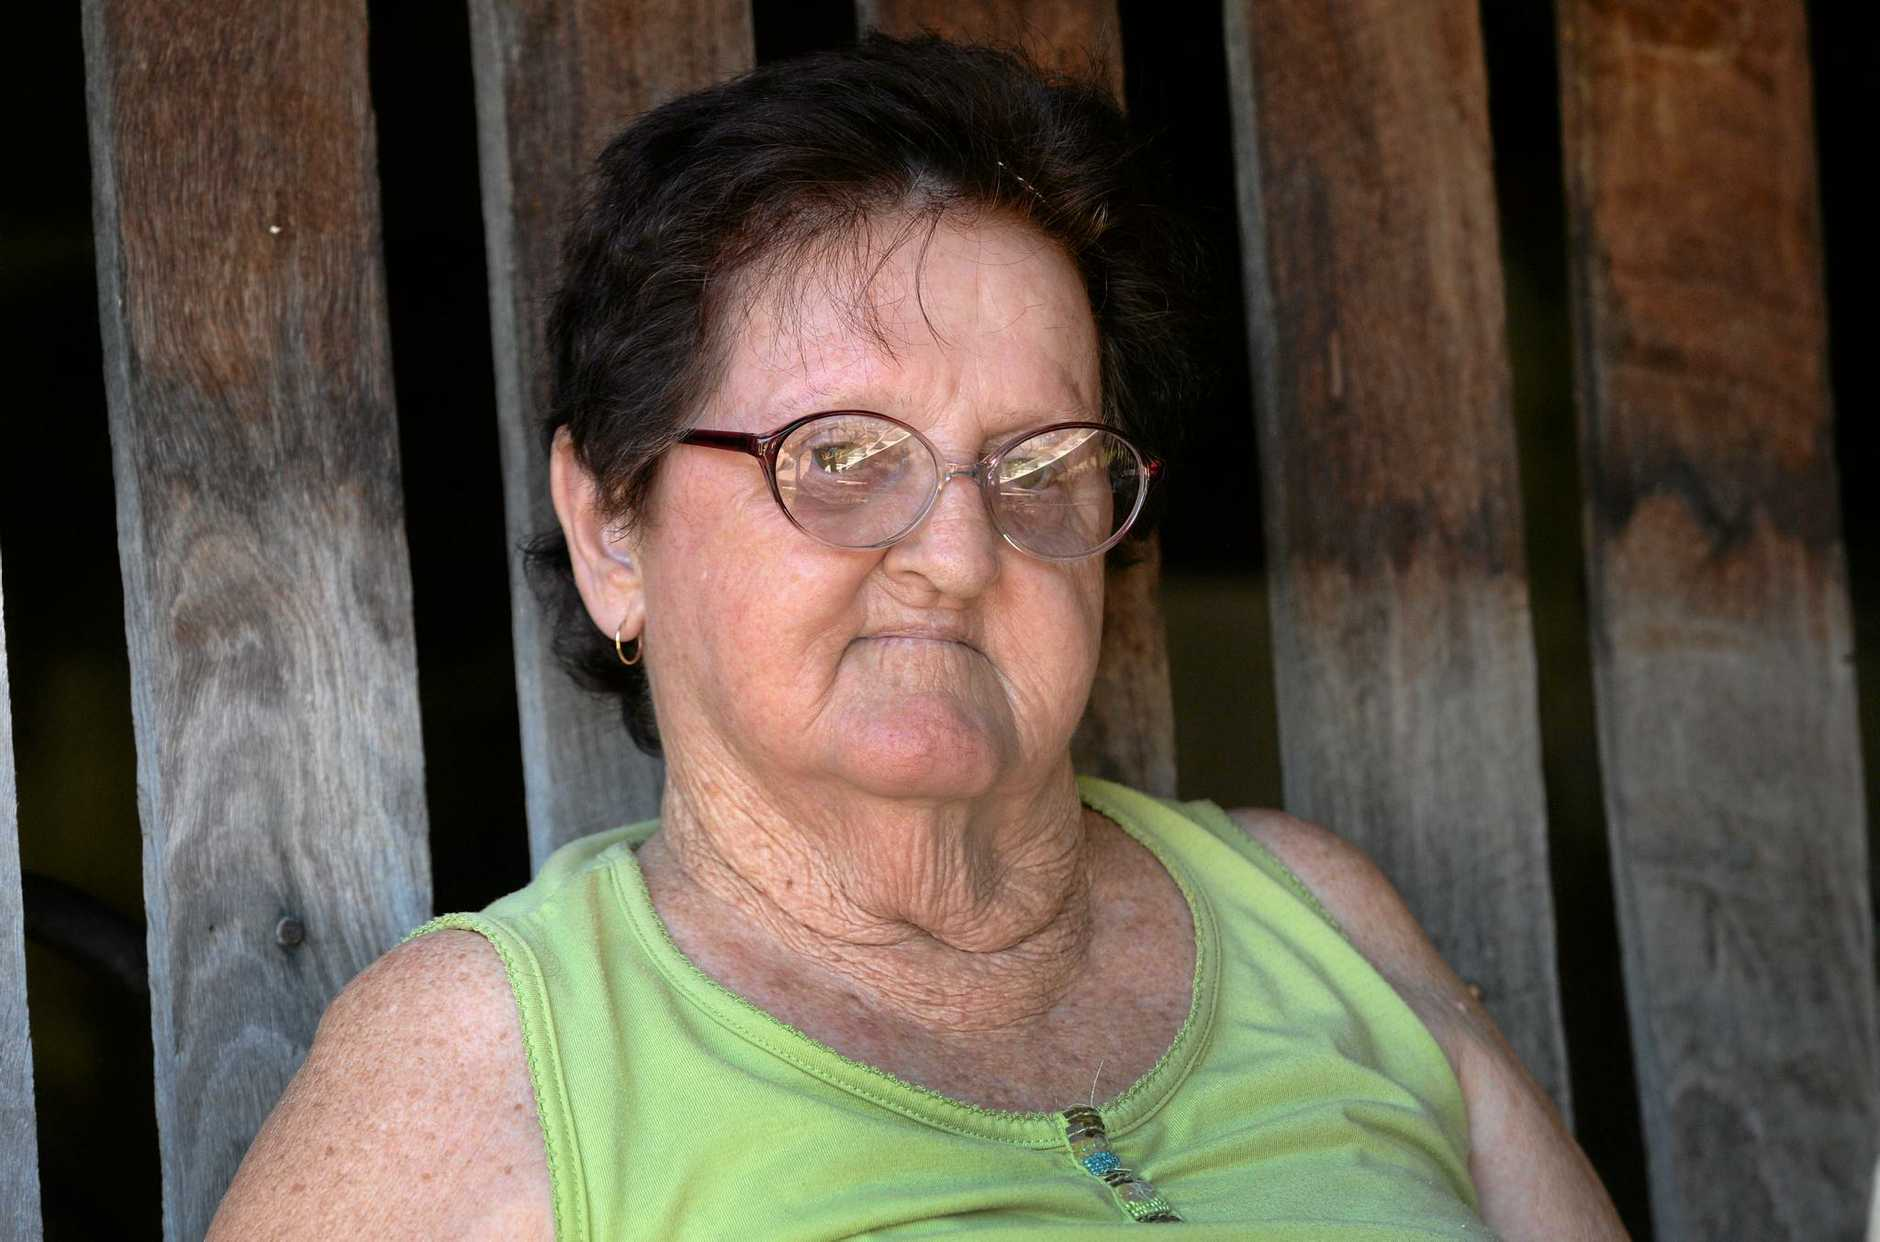 Margaret Evans' son and carer was assaulted and robbed shortly after leaving a CBD hotel early Saturday morning by a group of four people.